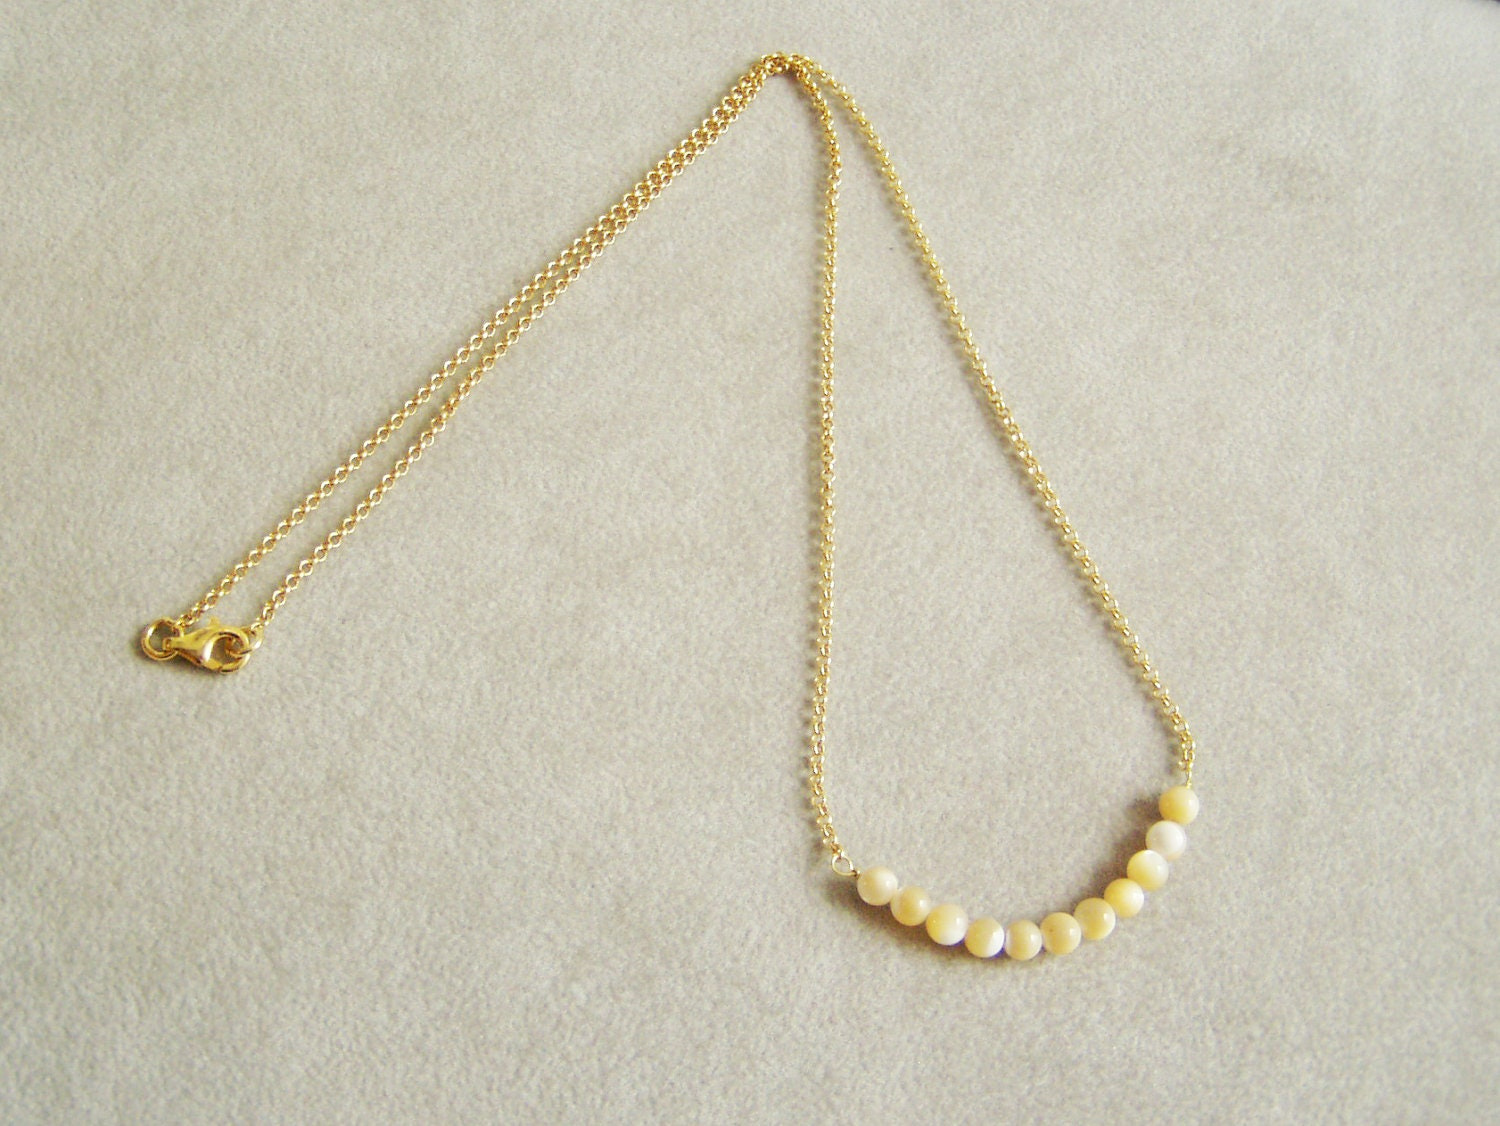 Thin golden chain necklace, mother of pearl beads, sterling ...